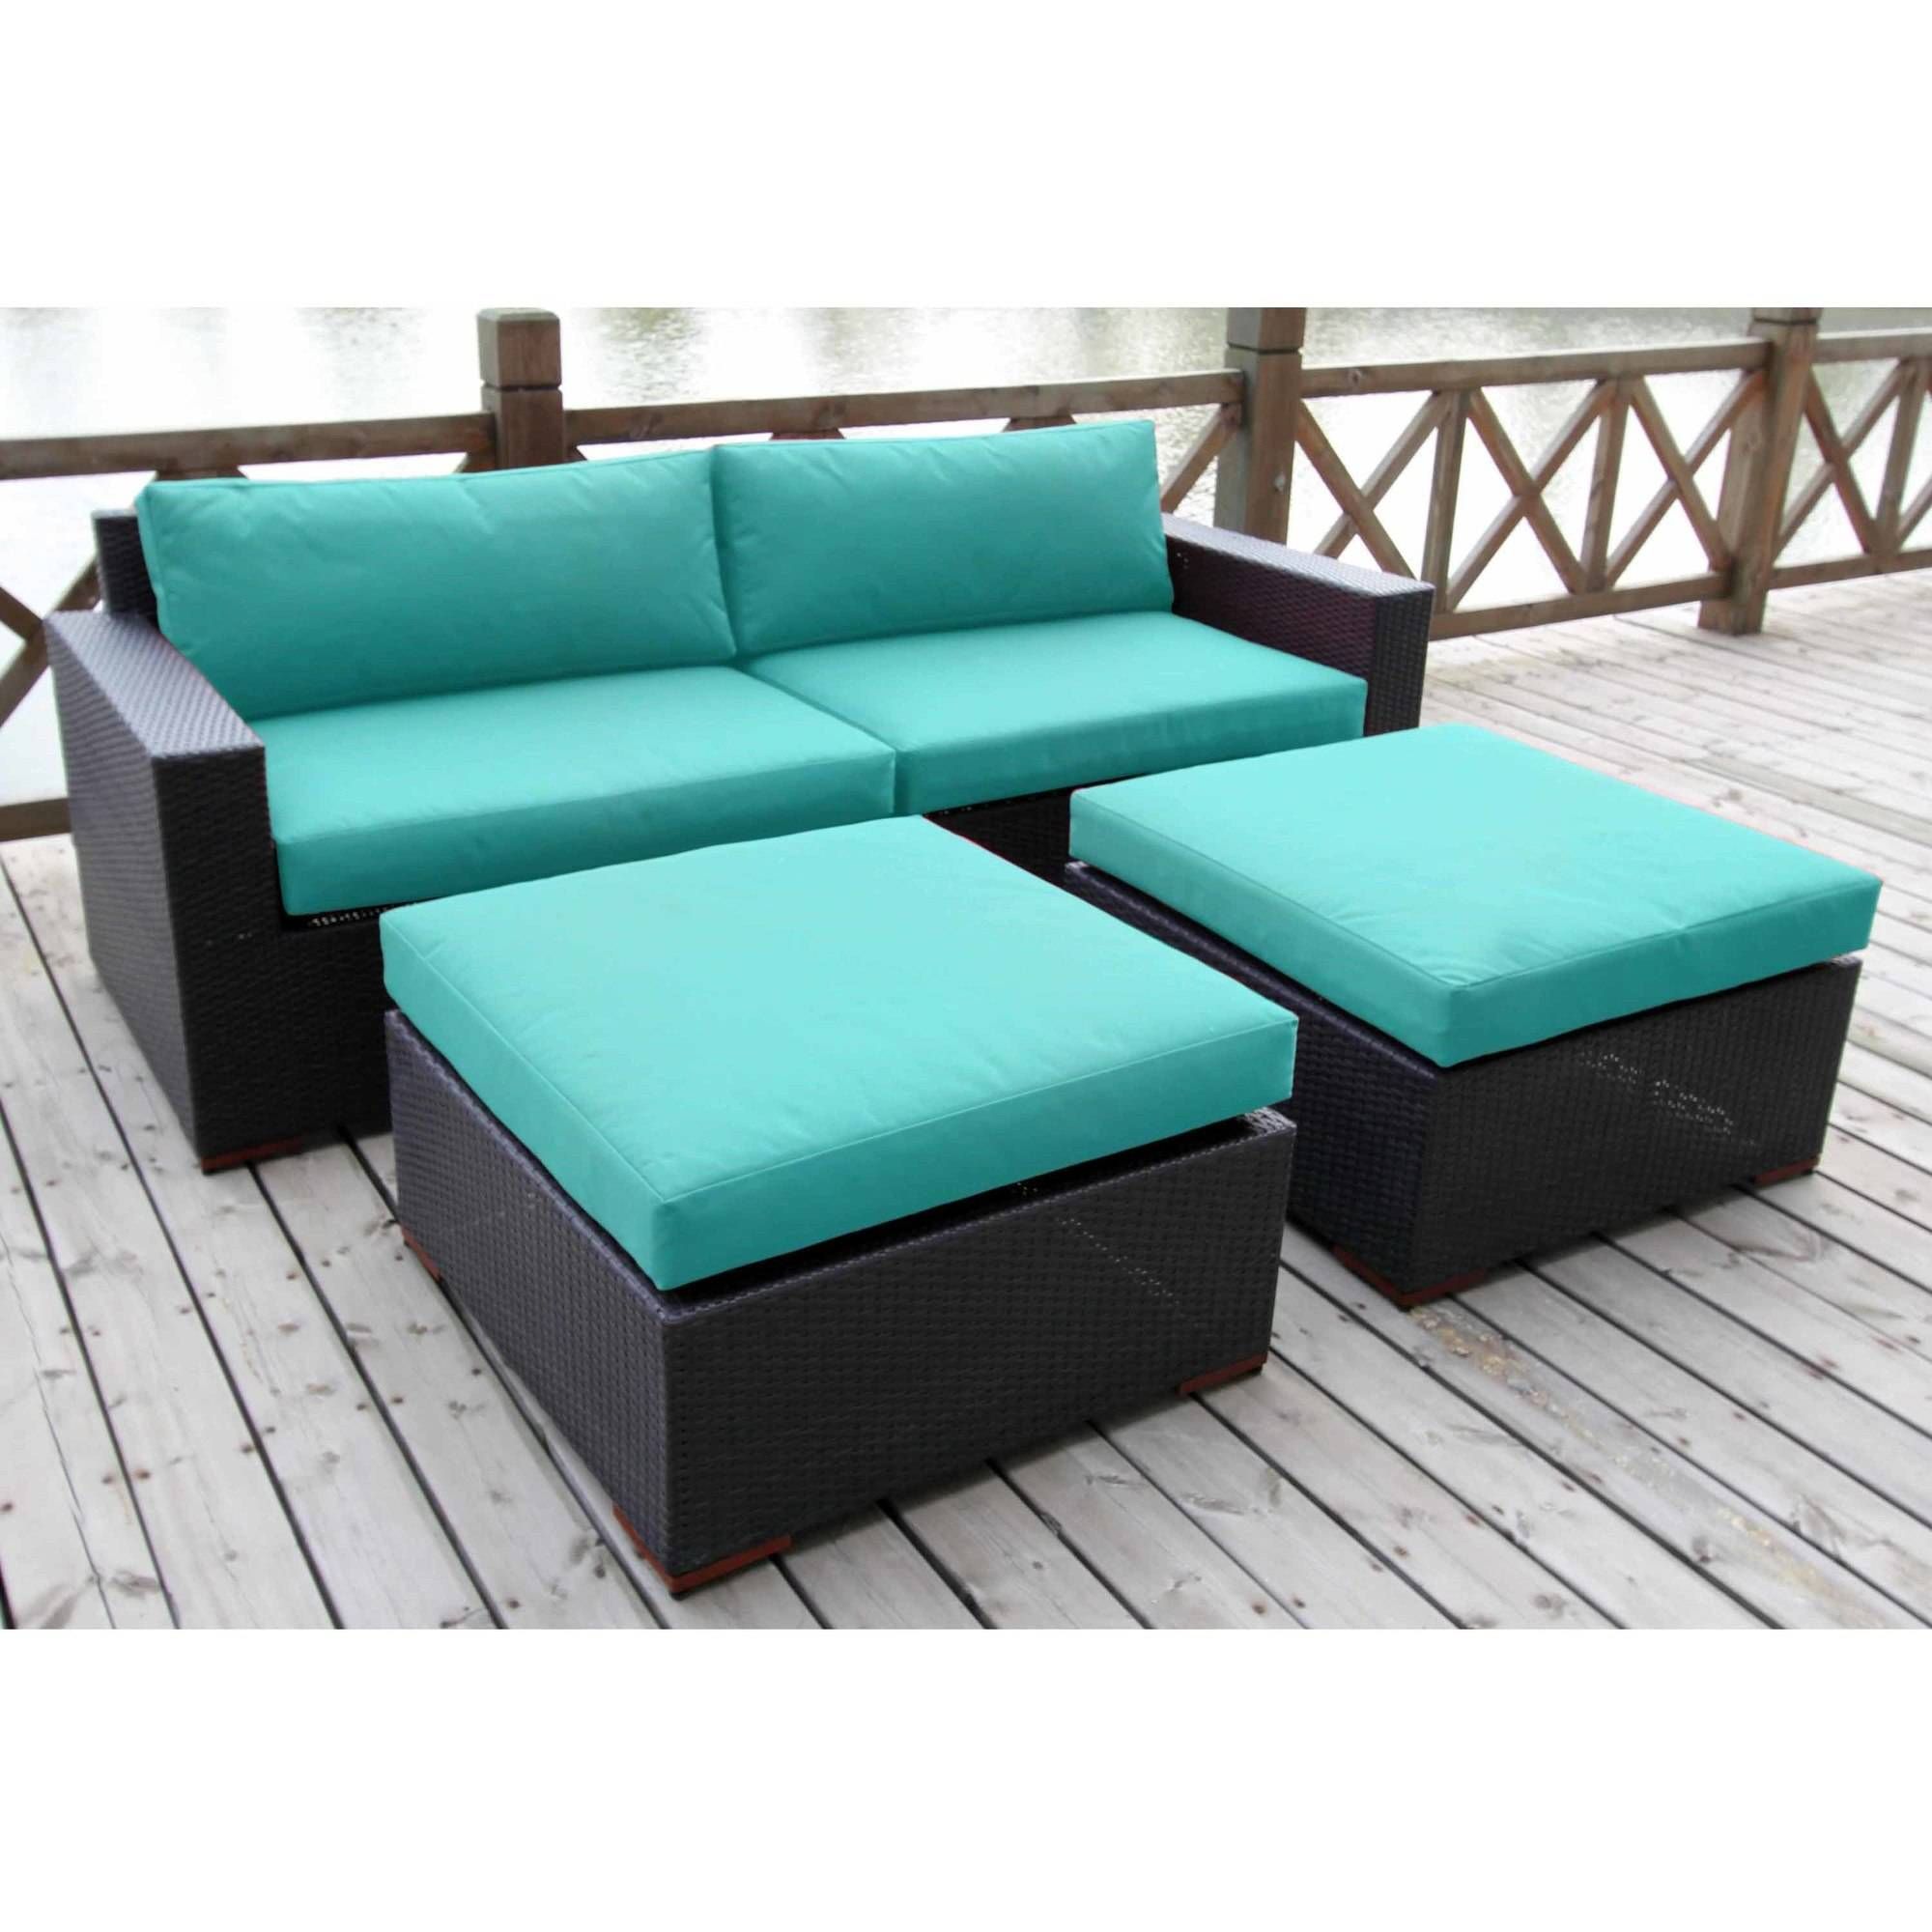 Bellini Home and Gardens Primland Wicker 4 Piece Patio Deep Seating Sofa and Ottoman Chat Set